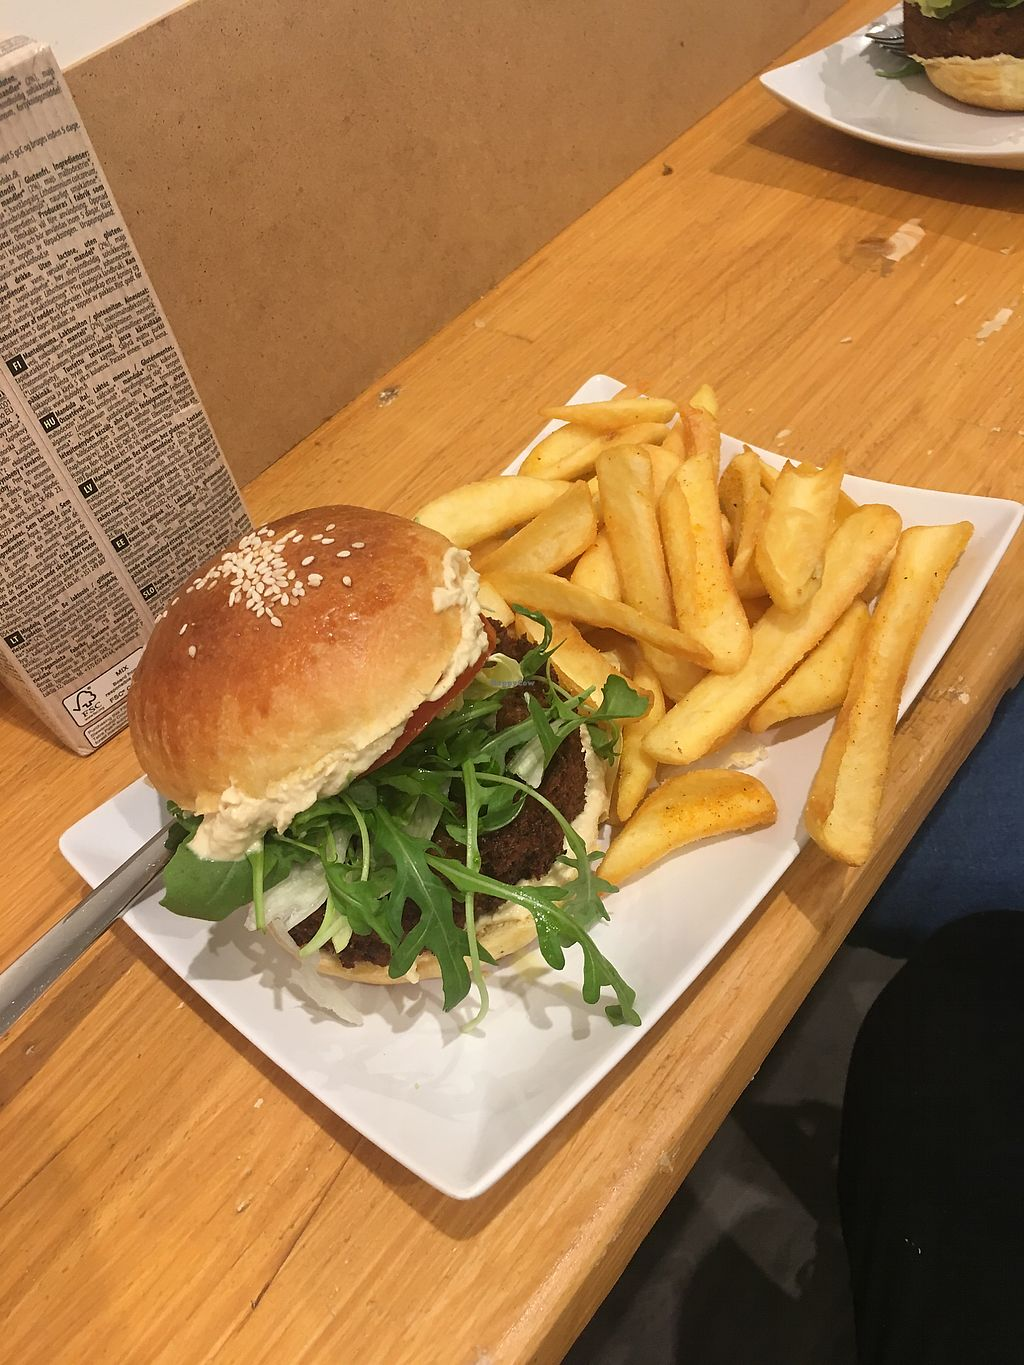 """Photo of Snack Vegi  by <a href=""""/members/profile/Jonathon67"""">Jonathon67</a> <br/>Veggie burger and fries  <br/> September 12, 2017  - <a href='/contact/abuse/image/100820/303717'>Report</a>"""